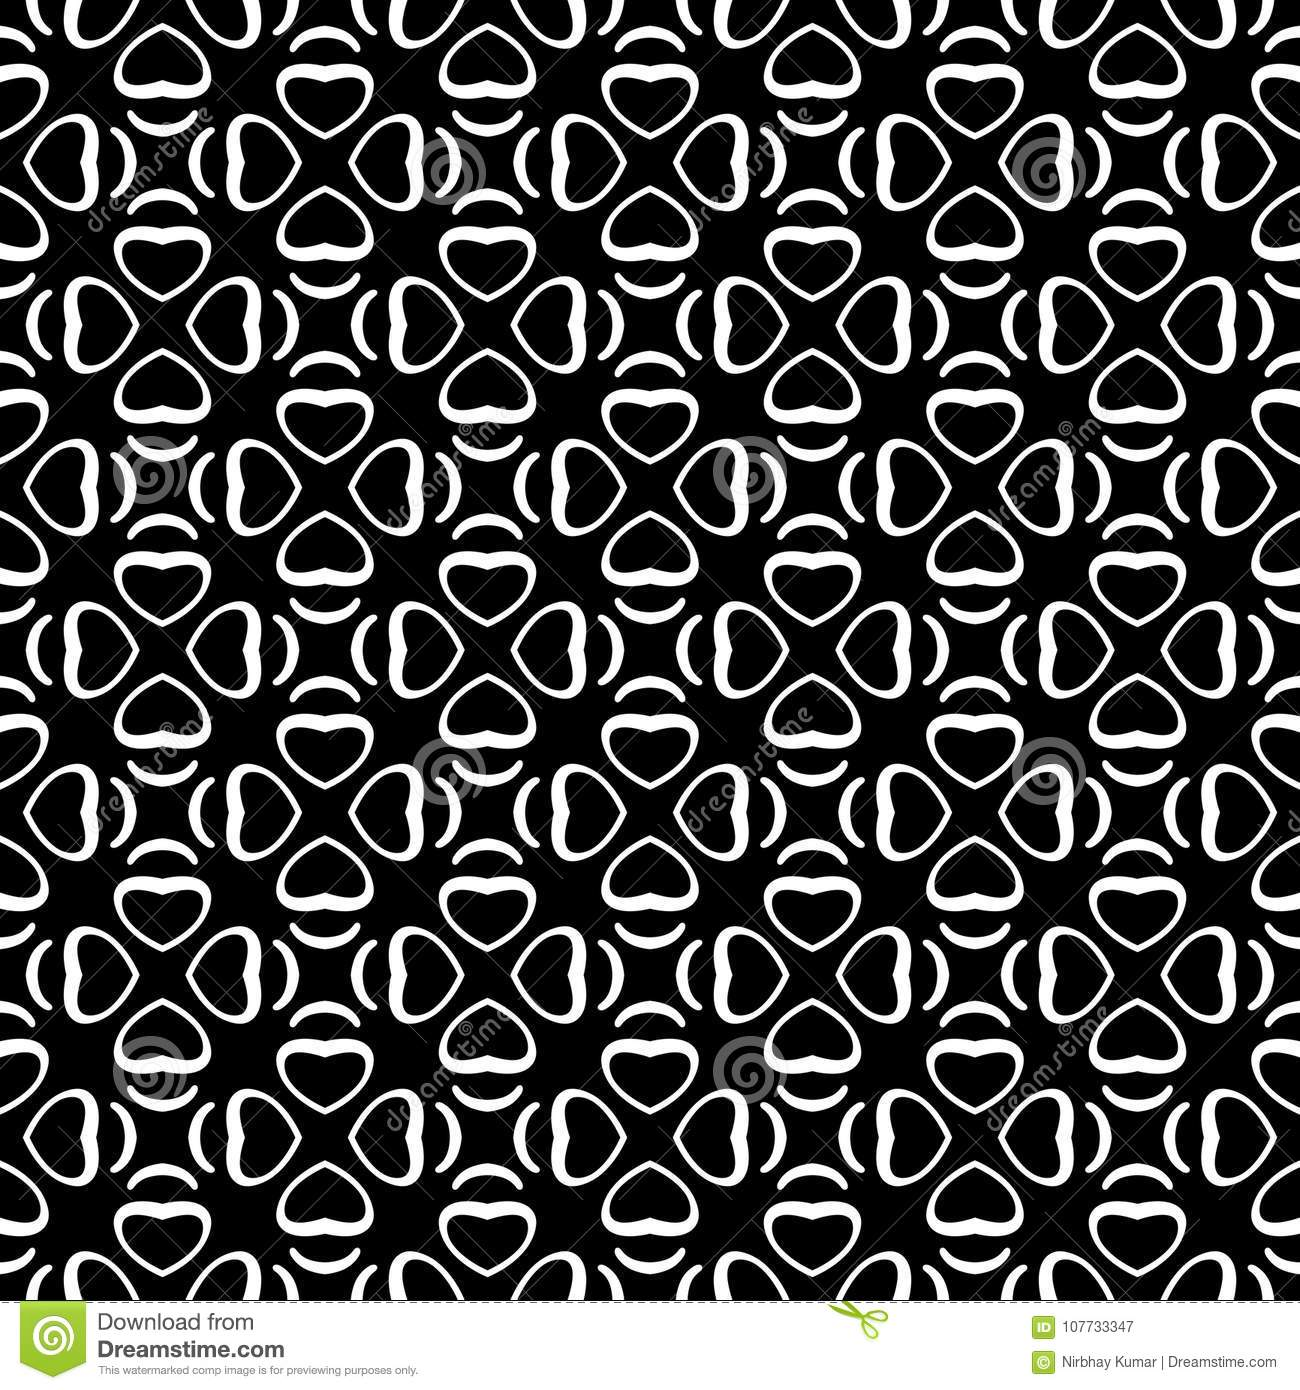 Simple Wallpaper Home Screen Black And White - pattern-website-background-wallpaper-screen-sever-book-cover-printing-laser-cutting-designs-vector-black-white-107733347  Pic_757279.jpg